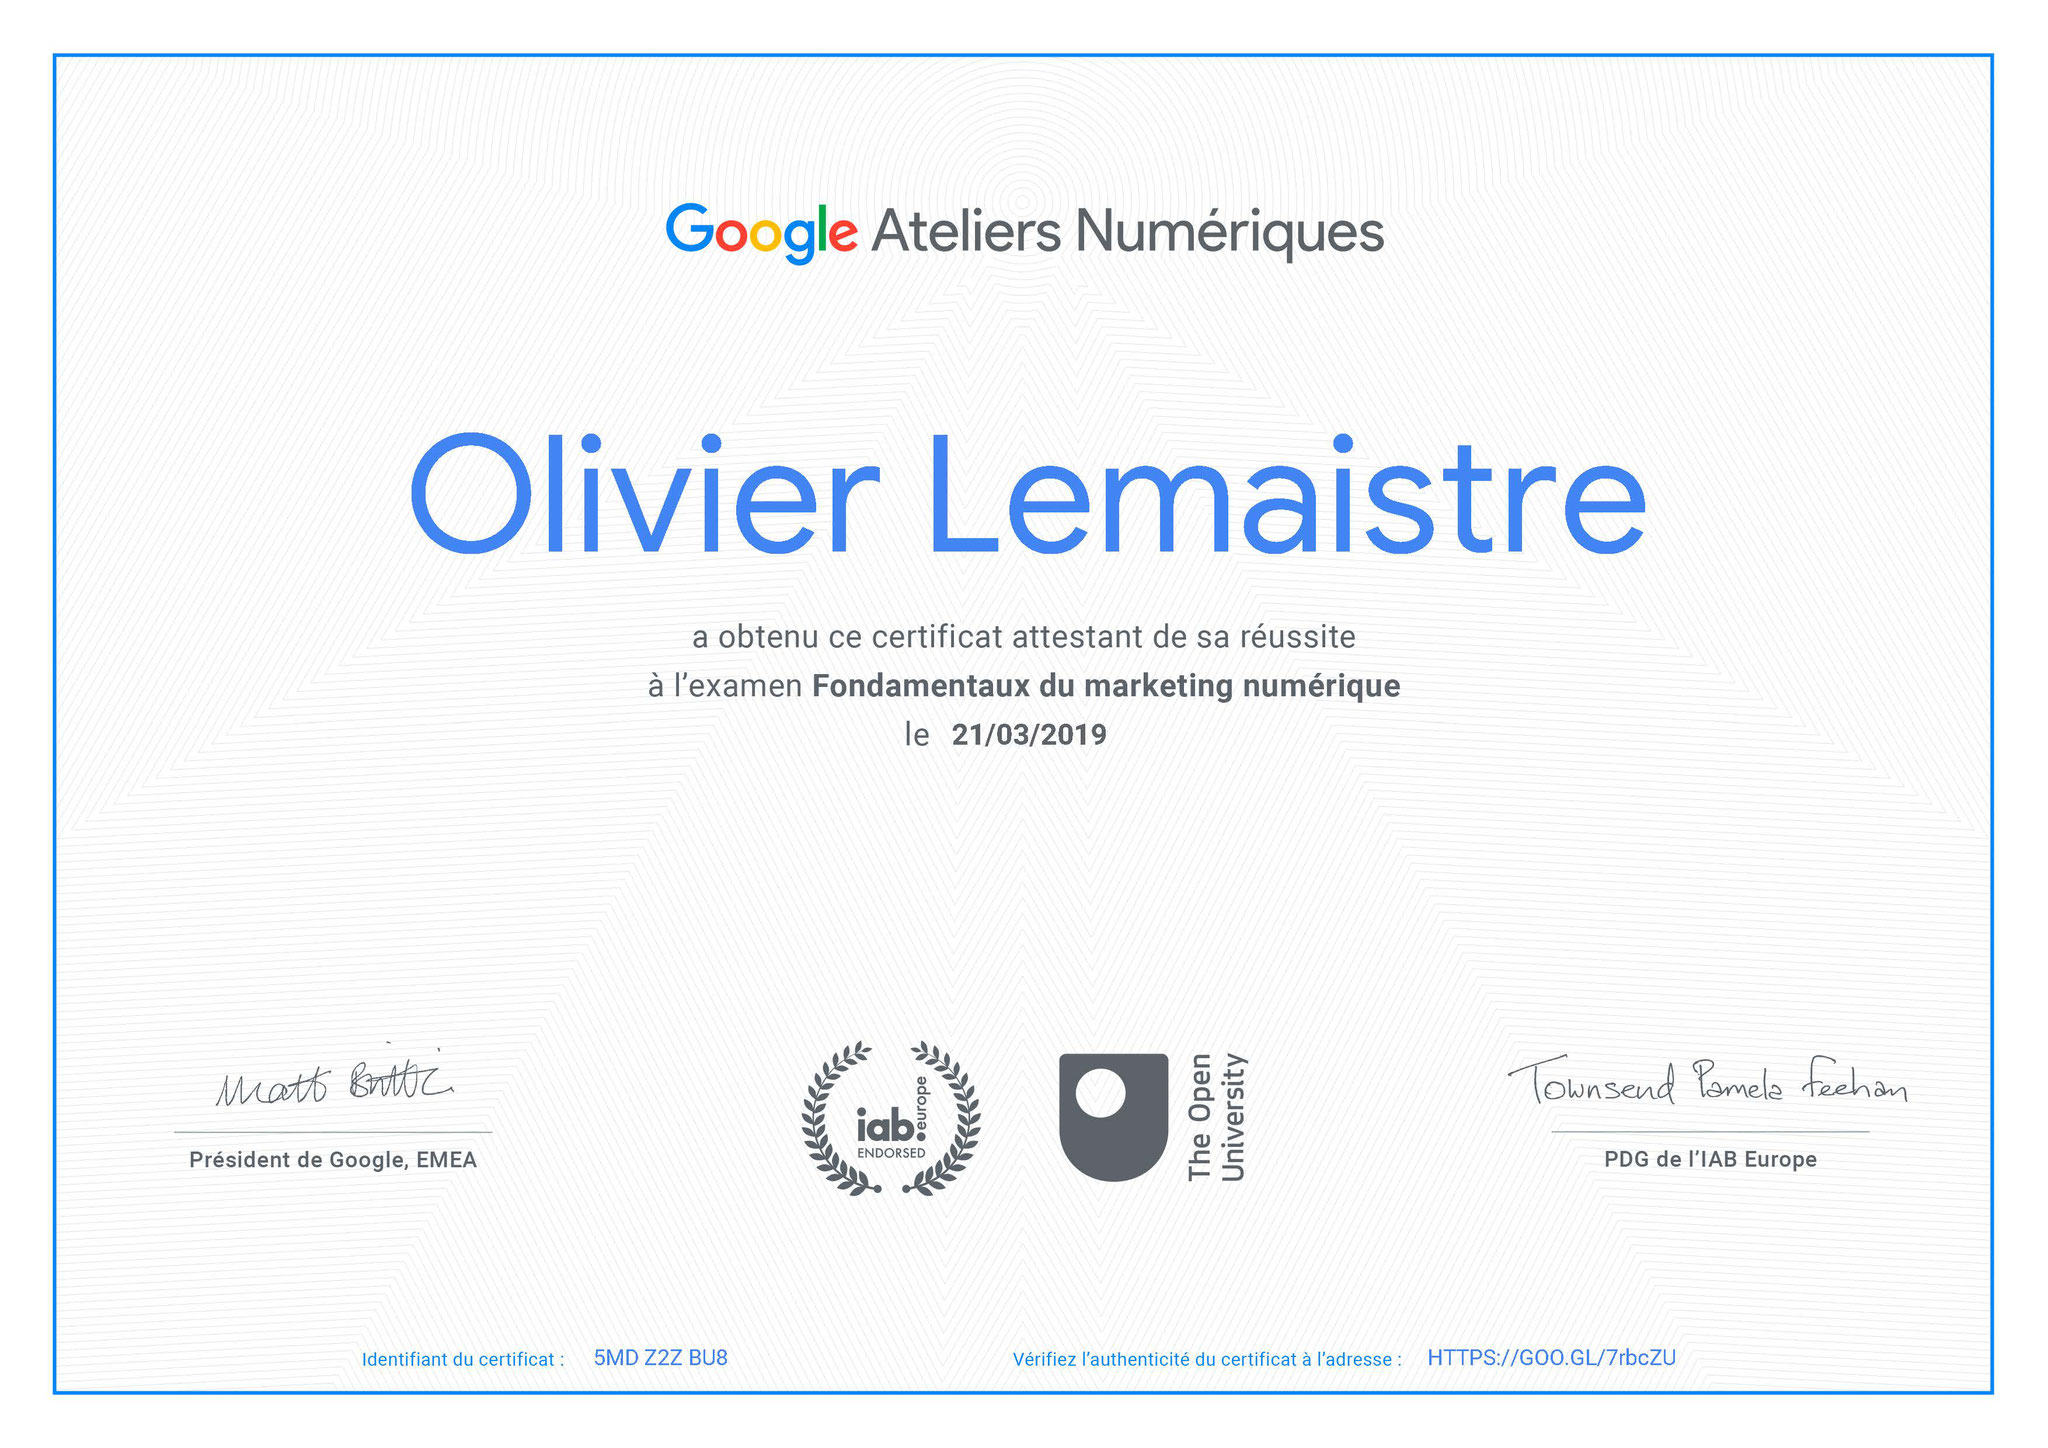 Certification Fondamentaux du marketing numérique Google